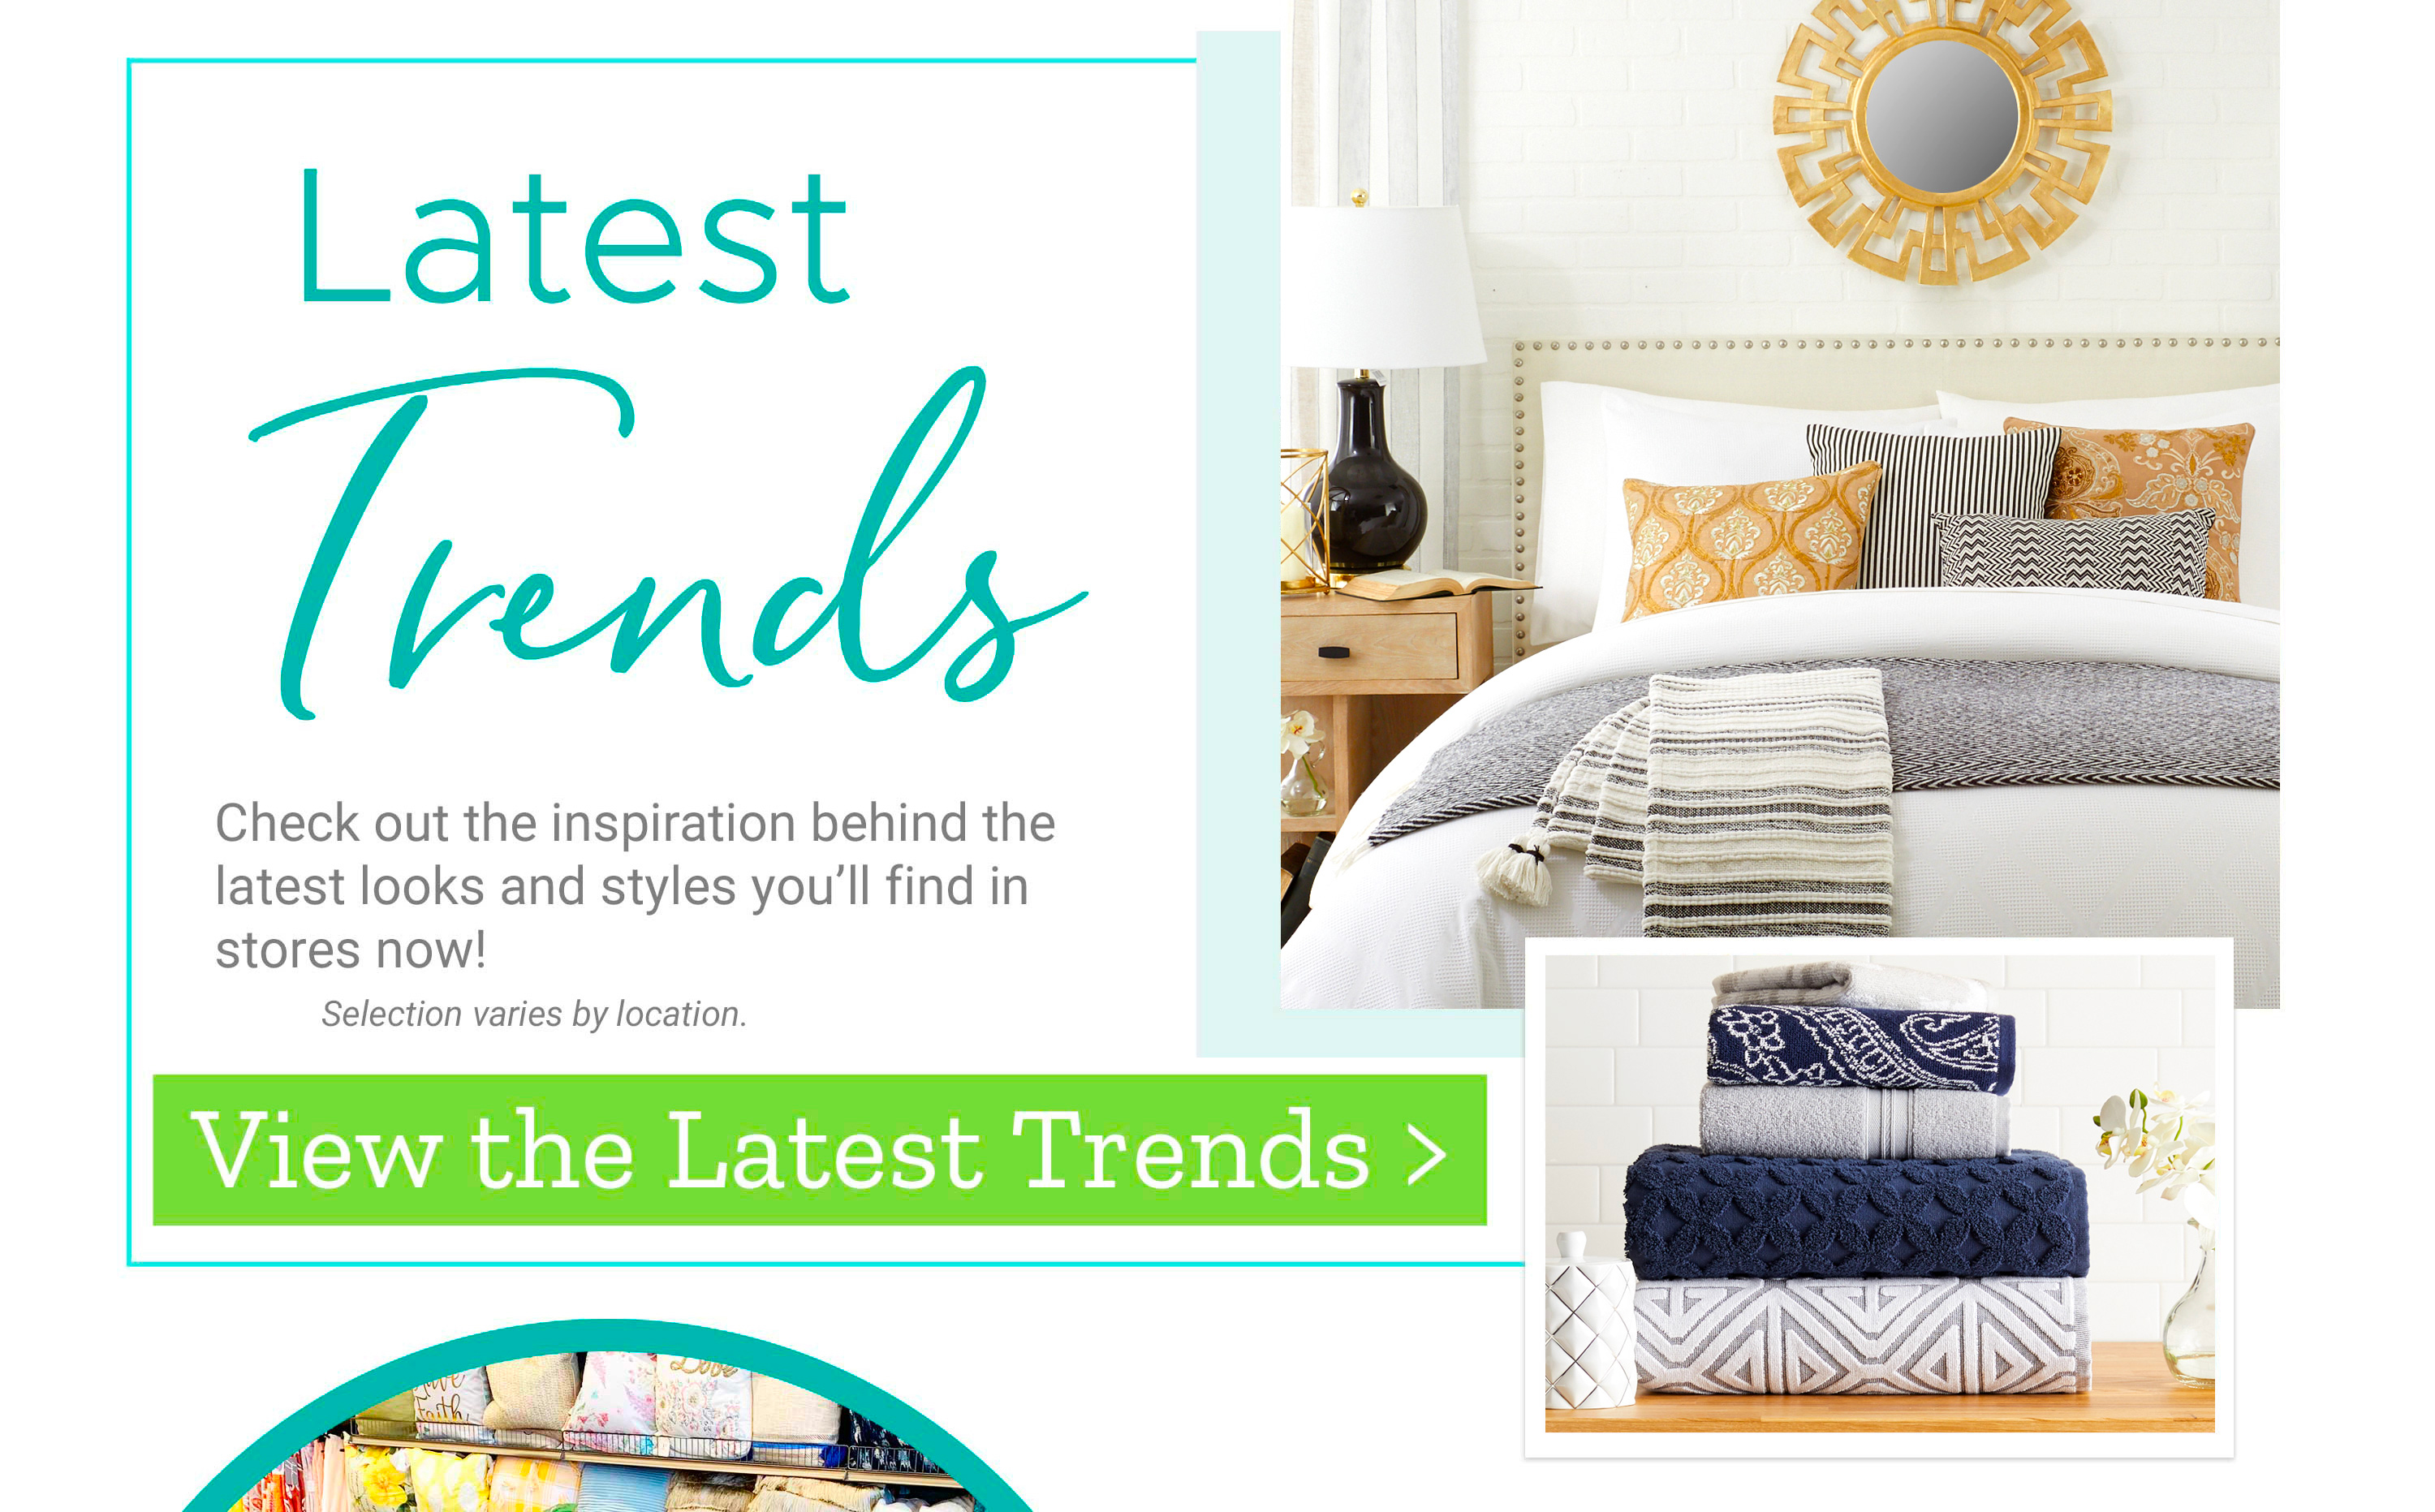 Latest Trends - Check out the inspiration behind the latest looks and styles you'll find in stores now!